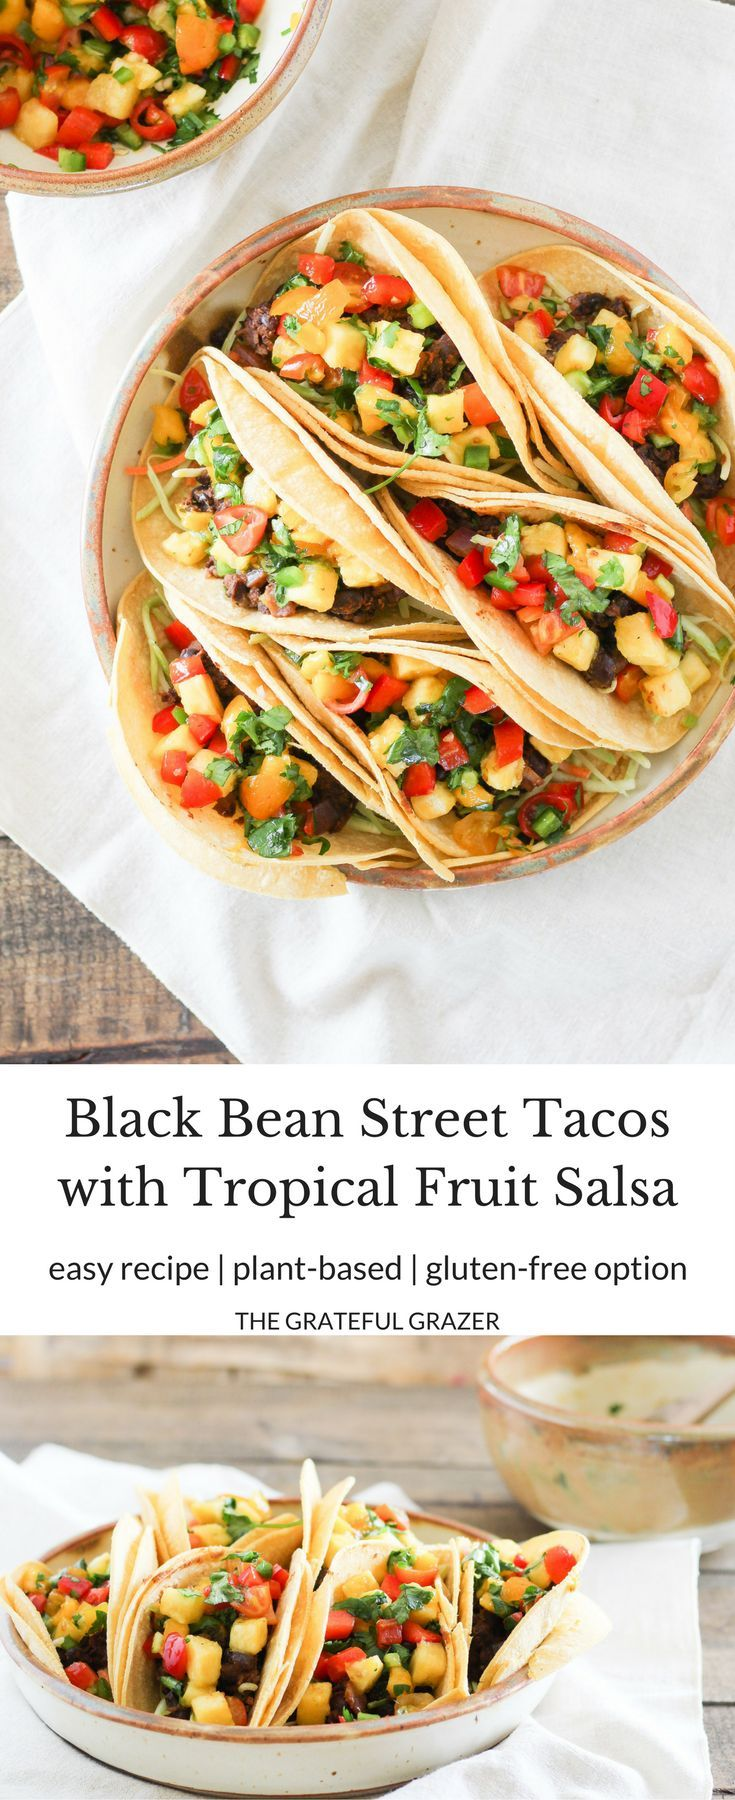 #ad Add a little zest to your summer meals with healthy Black Bean Street Tacos topped with Tropical Fruit Salsa! Vegetarian recipe with gluten-free option. via @gratefulgrazer